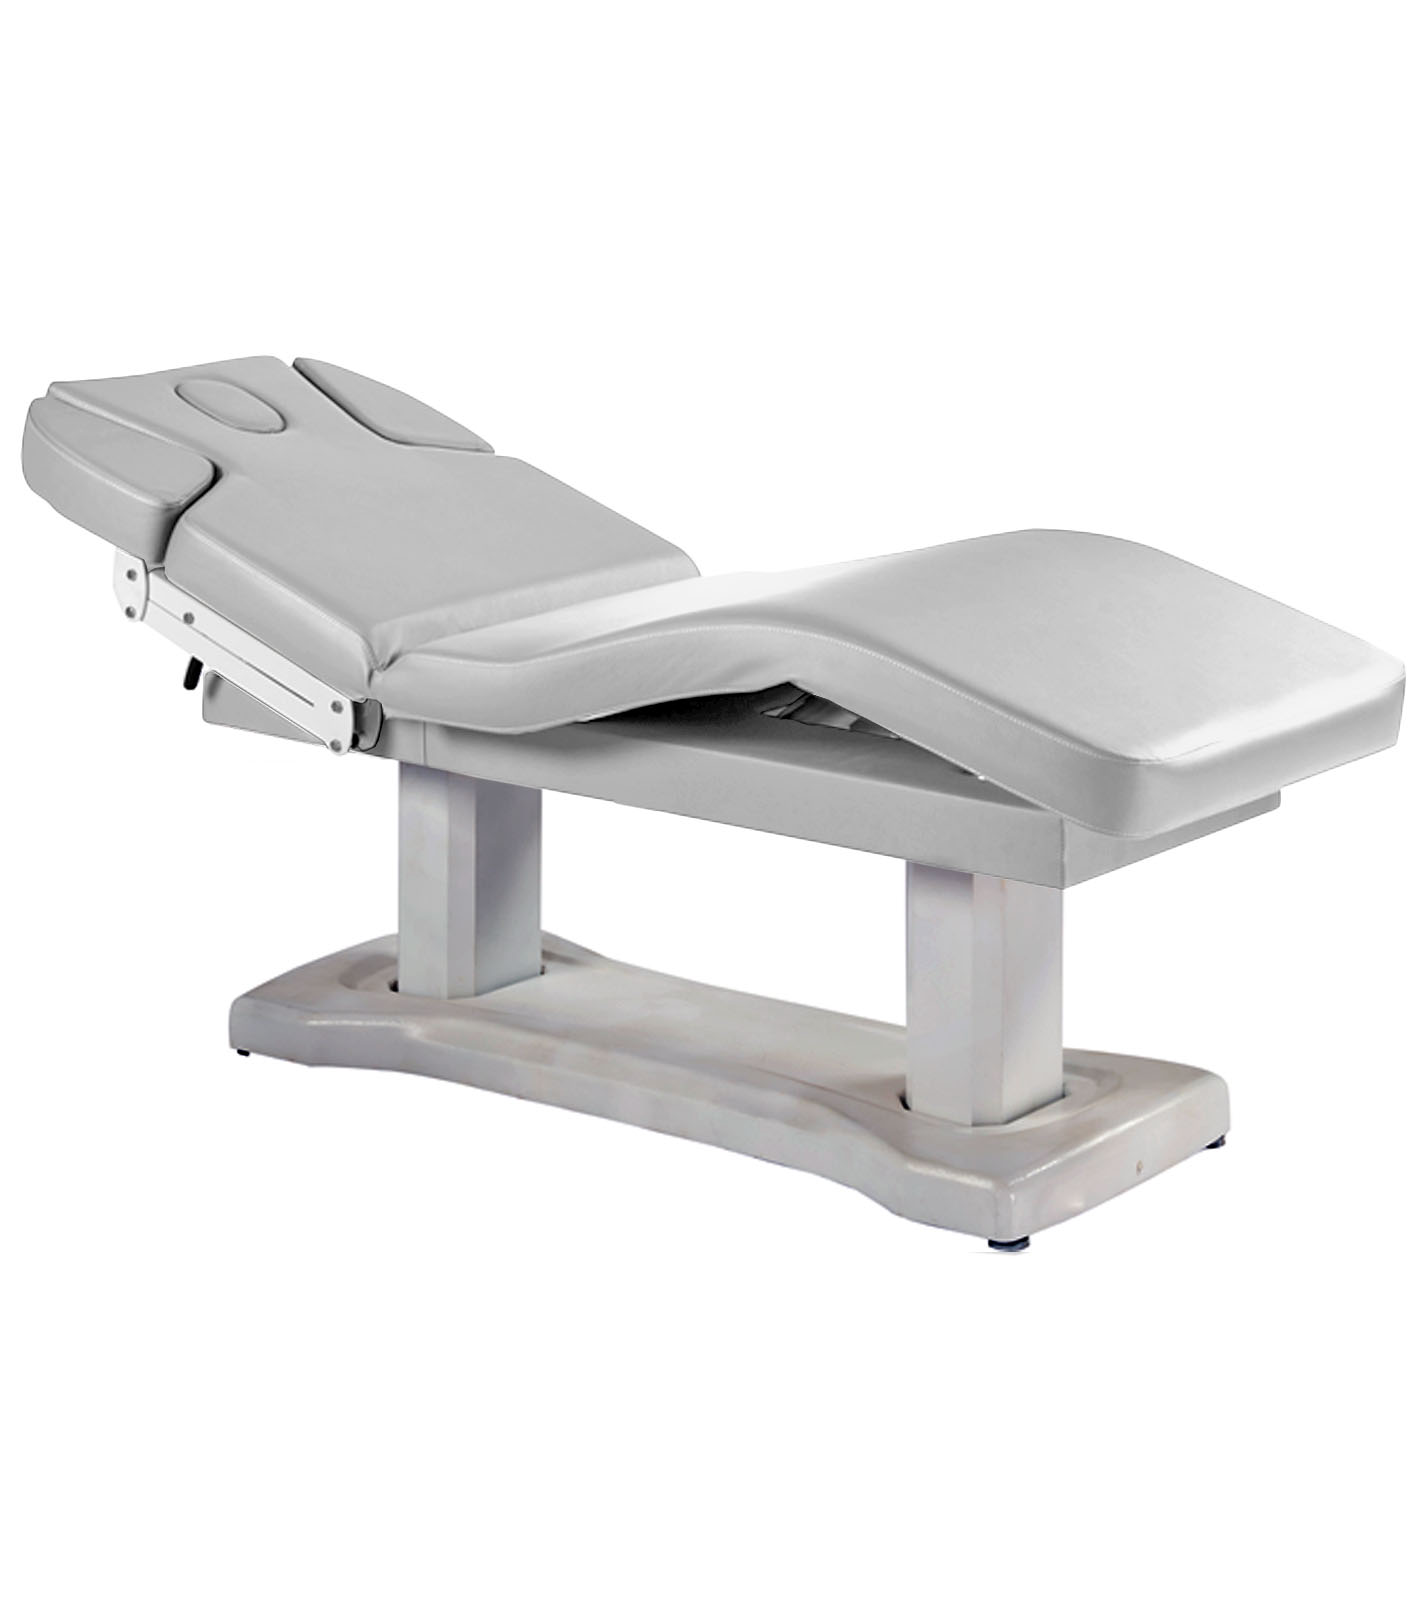 Seamless Electric Massage Table for Spa and Wellness Centers.